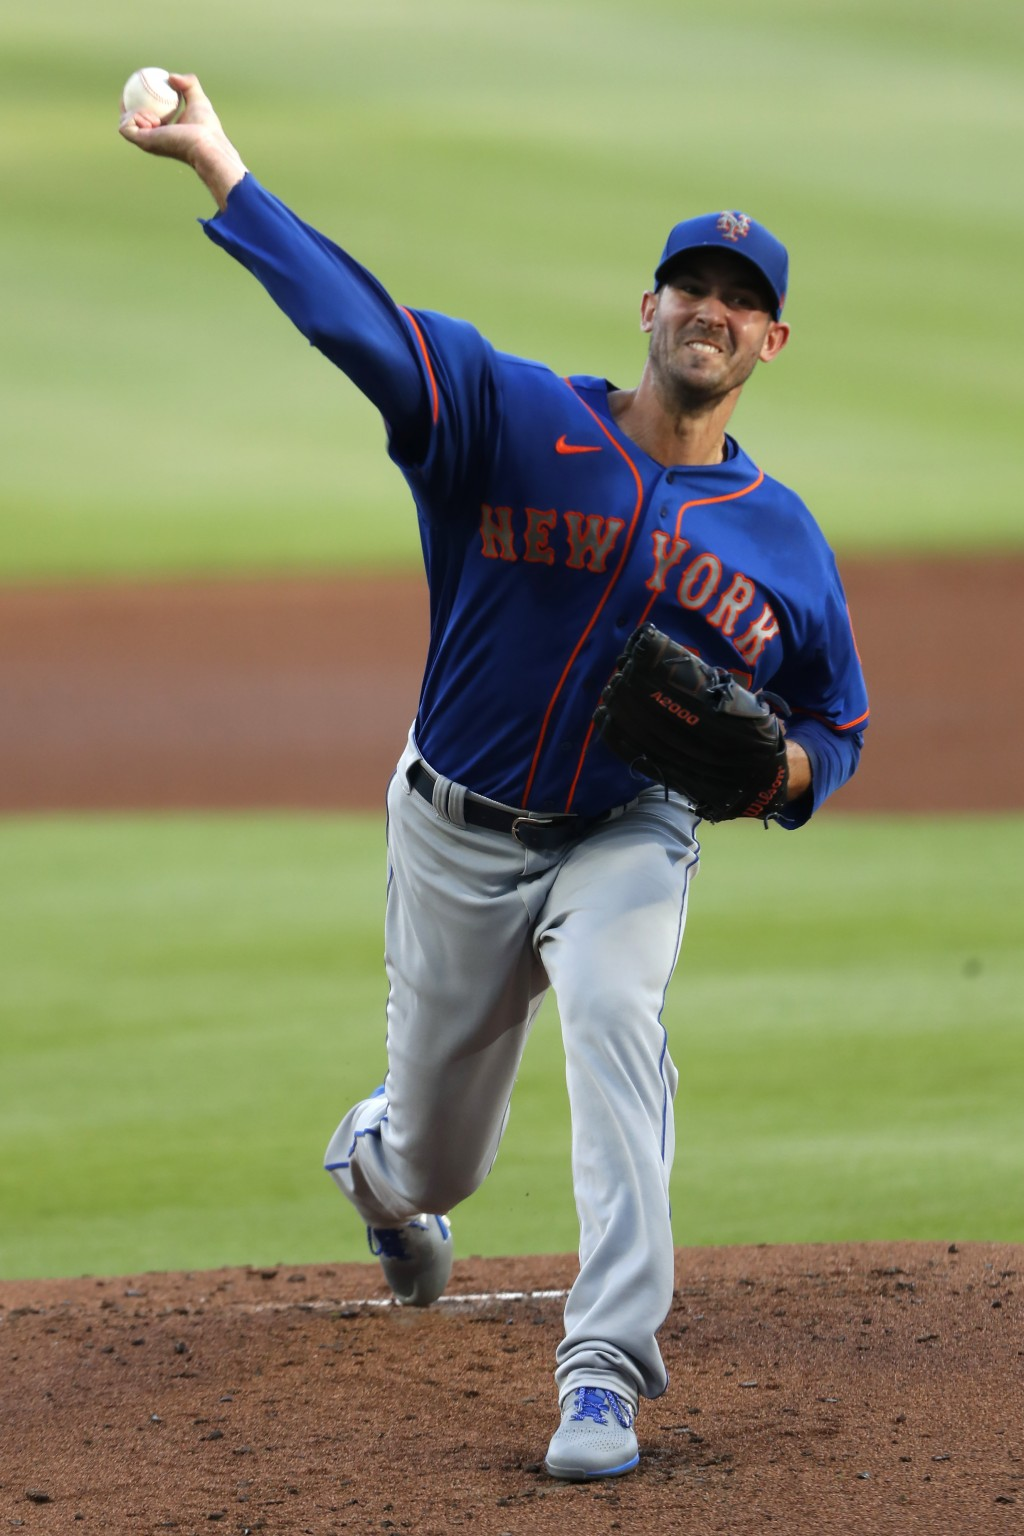 New York Mets starting pitcher Rick Porcello delivers in the first inning of a baseball game against the Atlanta Braves, Friday, July 31, 2020, in Atl...